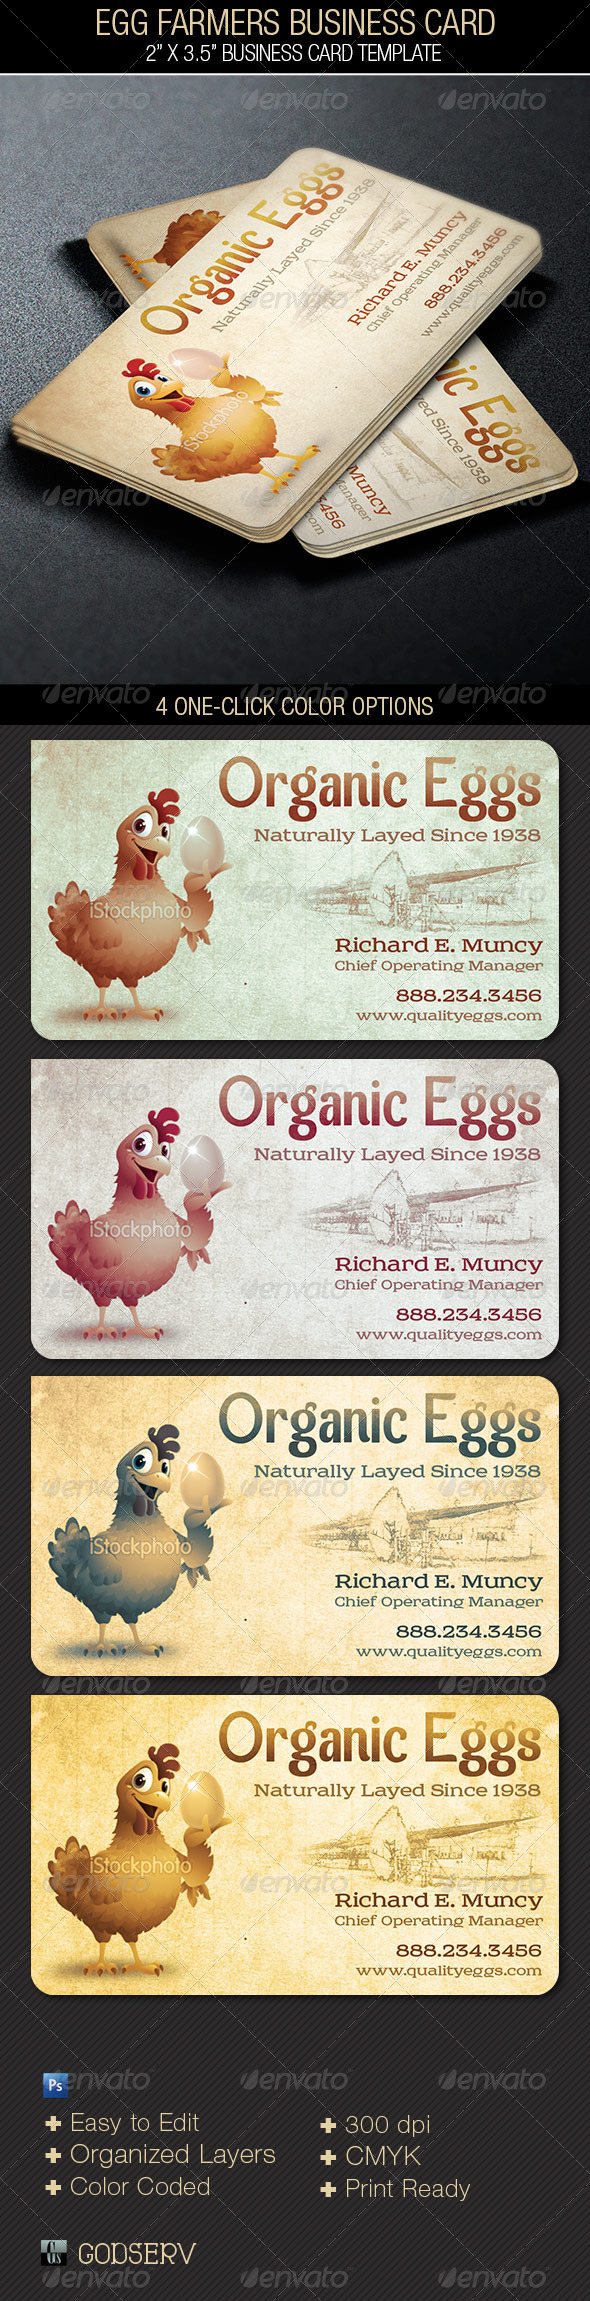 Egg Farmers Business Card - Industry Specific Business Cards